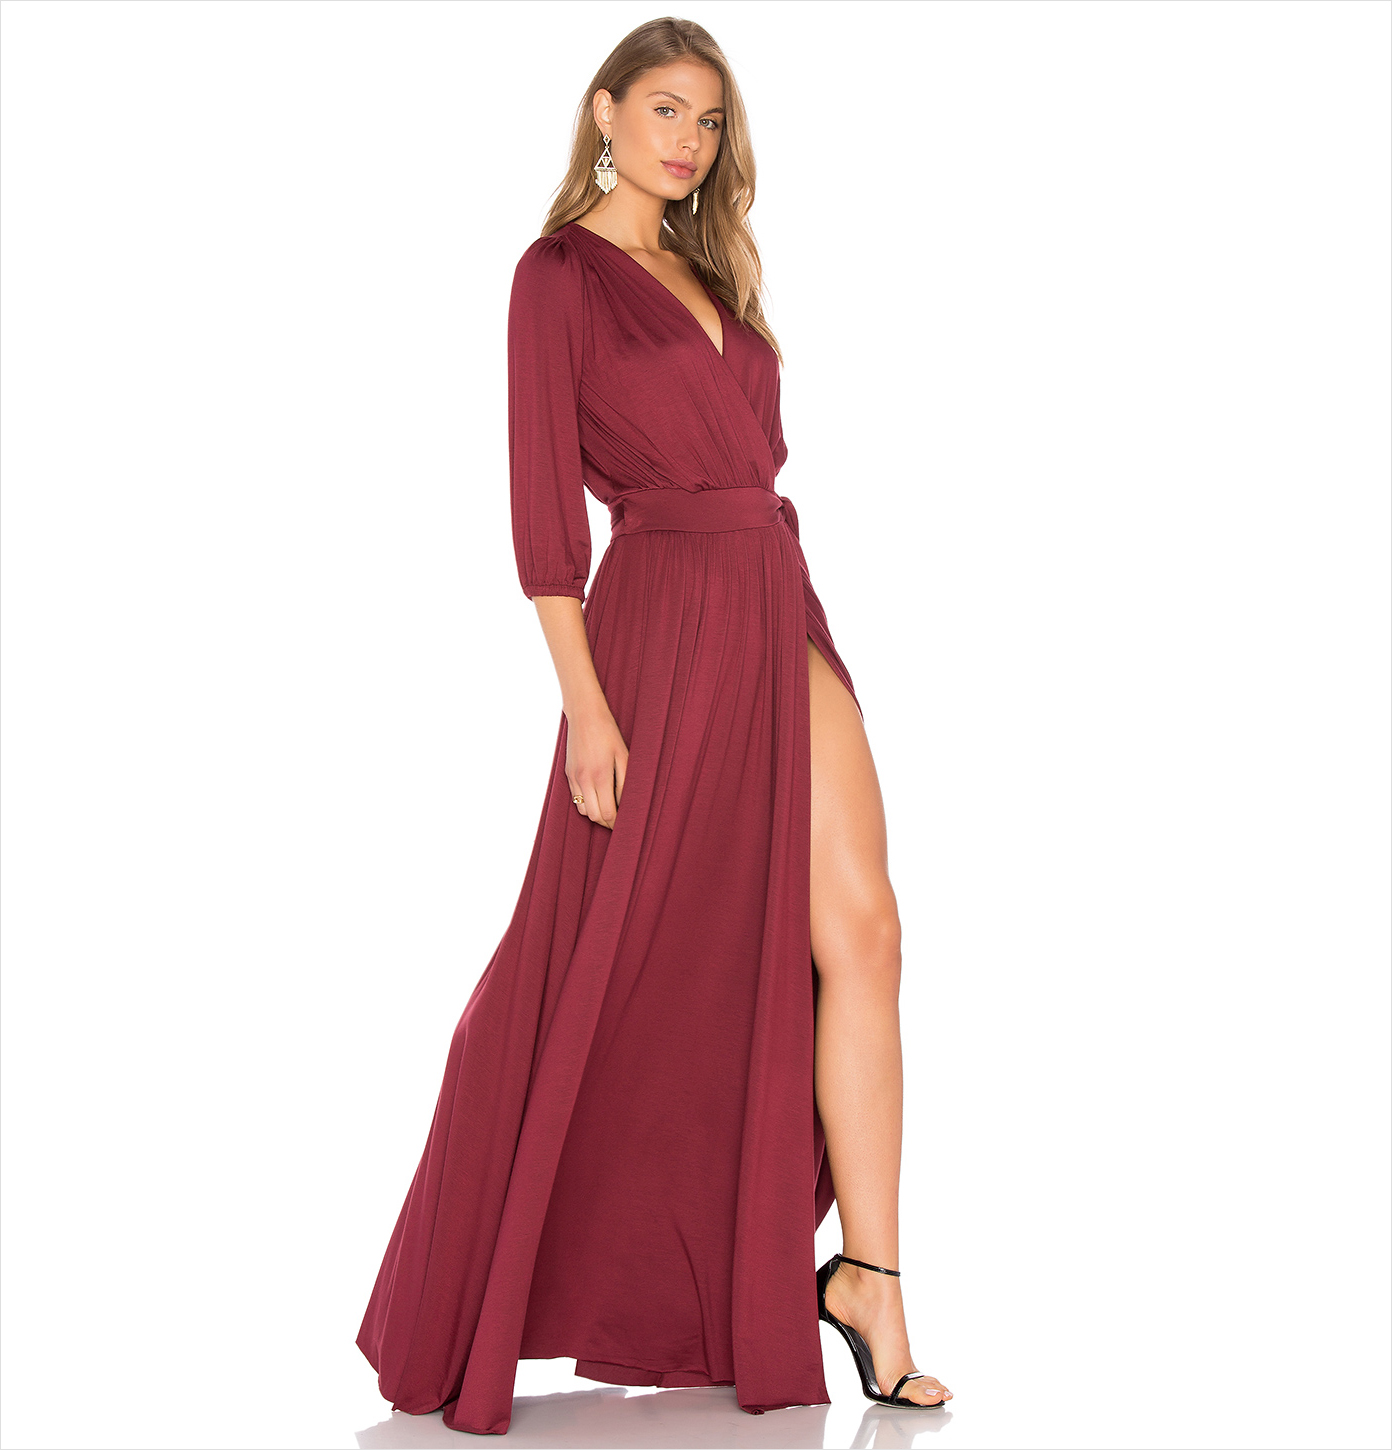 Wedding guest dress ideas long sleeve dresses inside for Long dress wedding guest